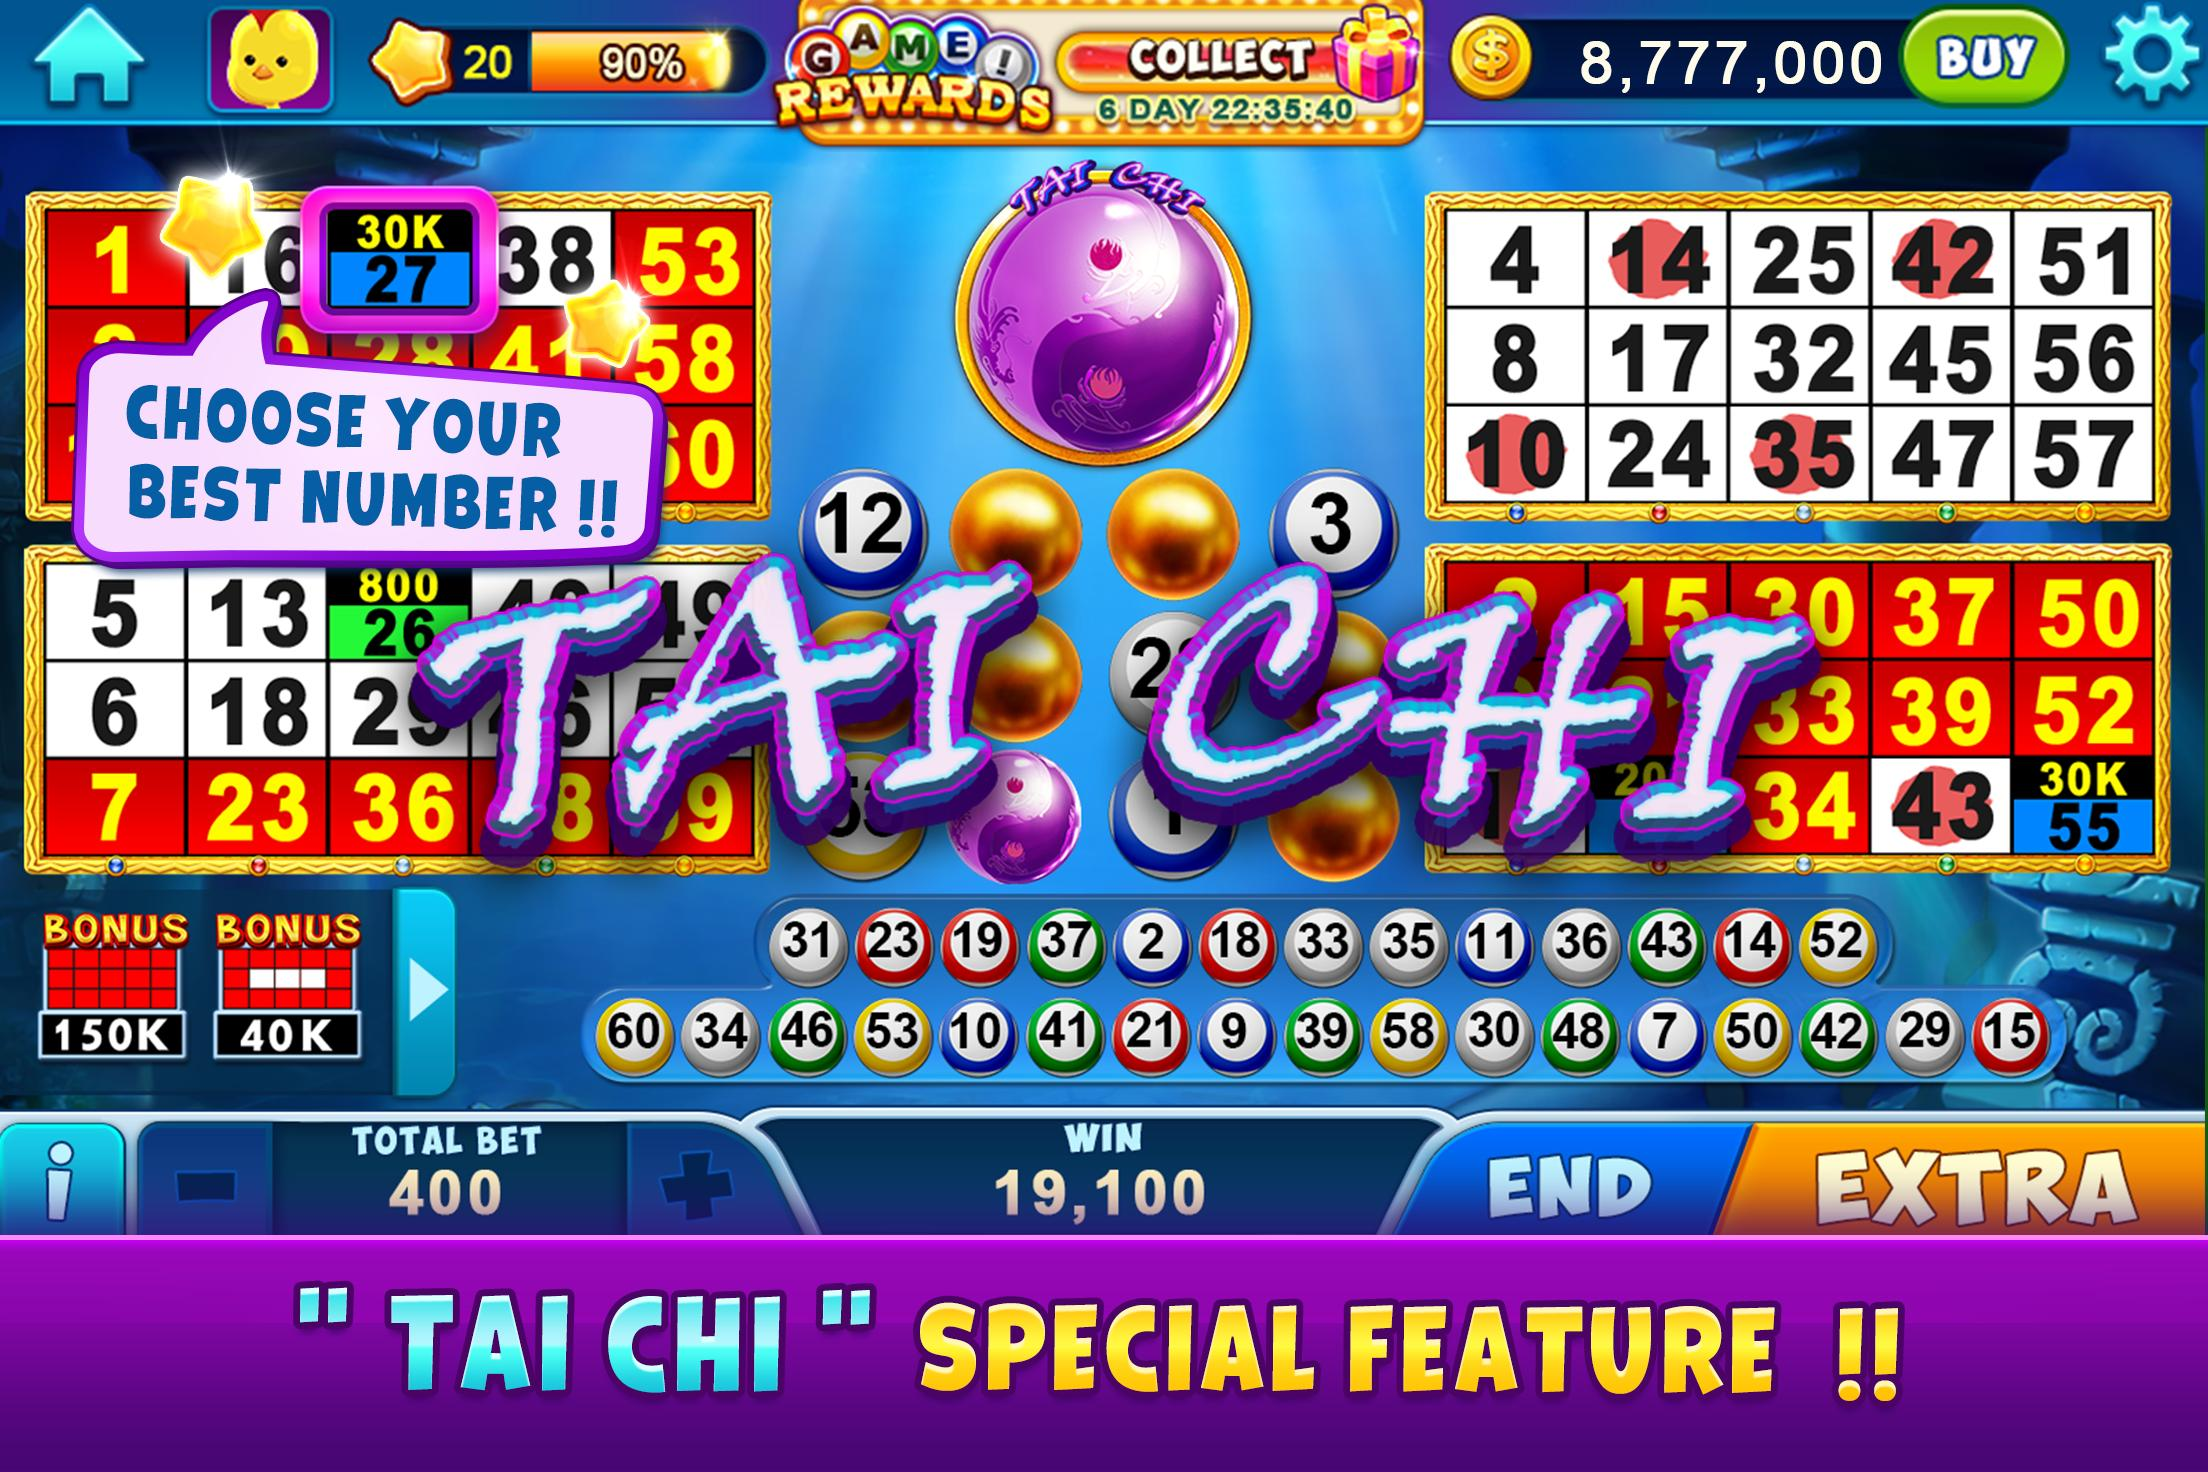 Absolute bingo mod apk | Bingo! Absolute Bingo Games Cheat Codes